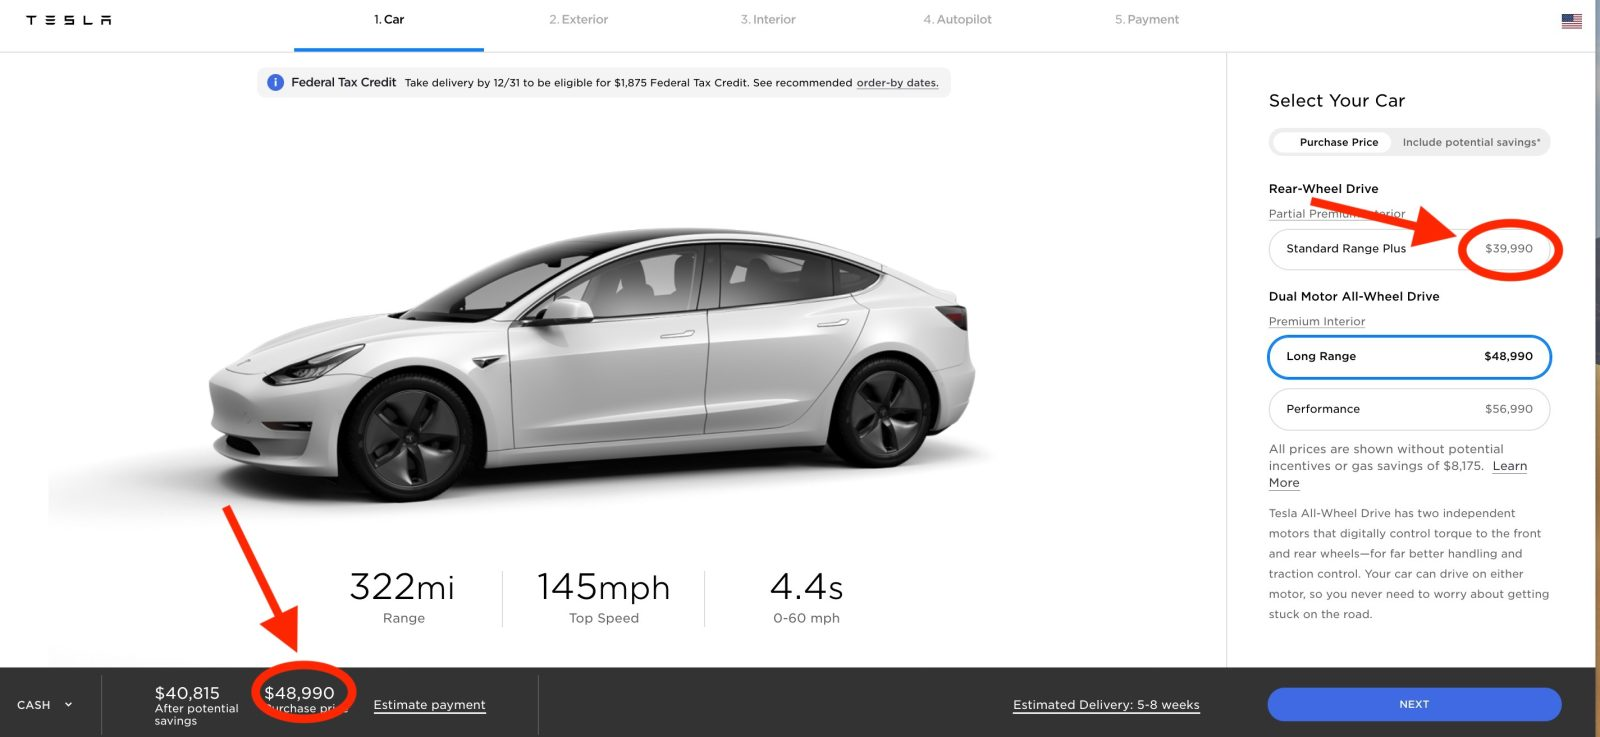 Tesla increases price of Model 3 as federal tax credit ends